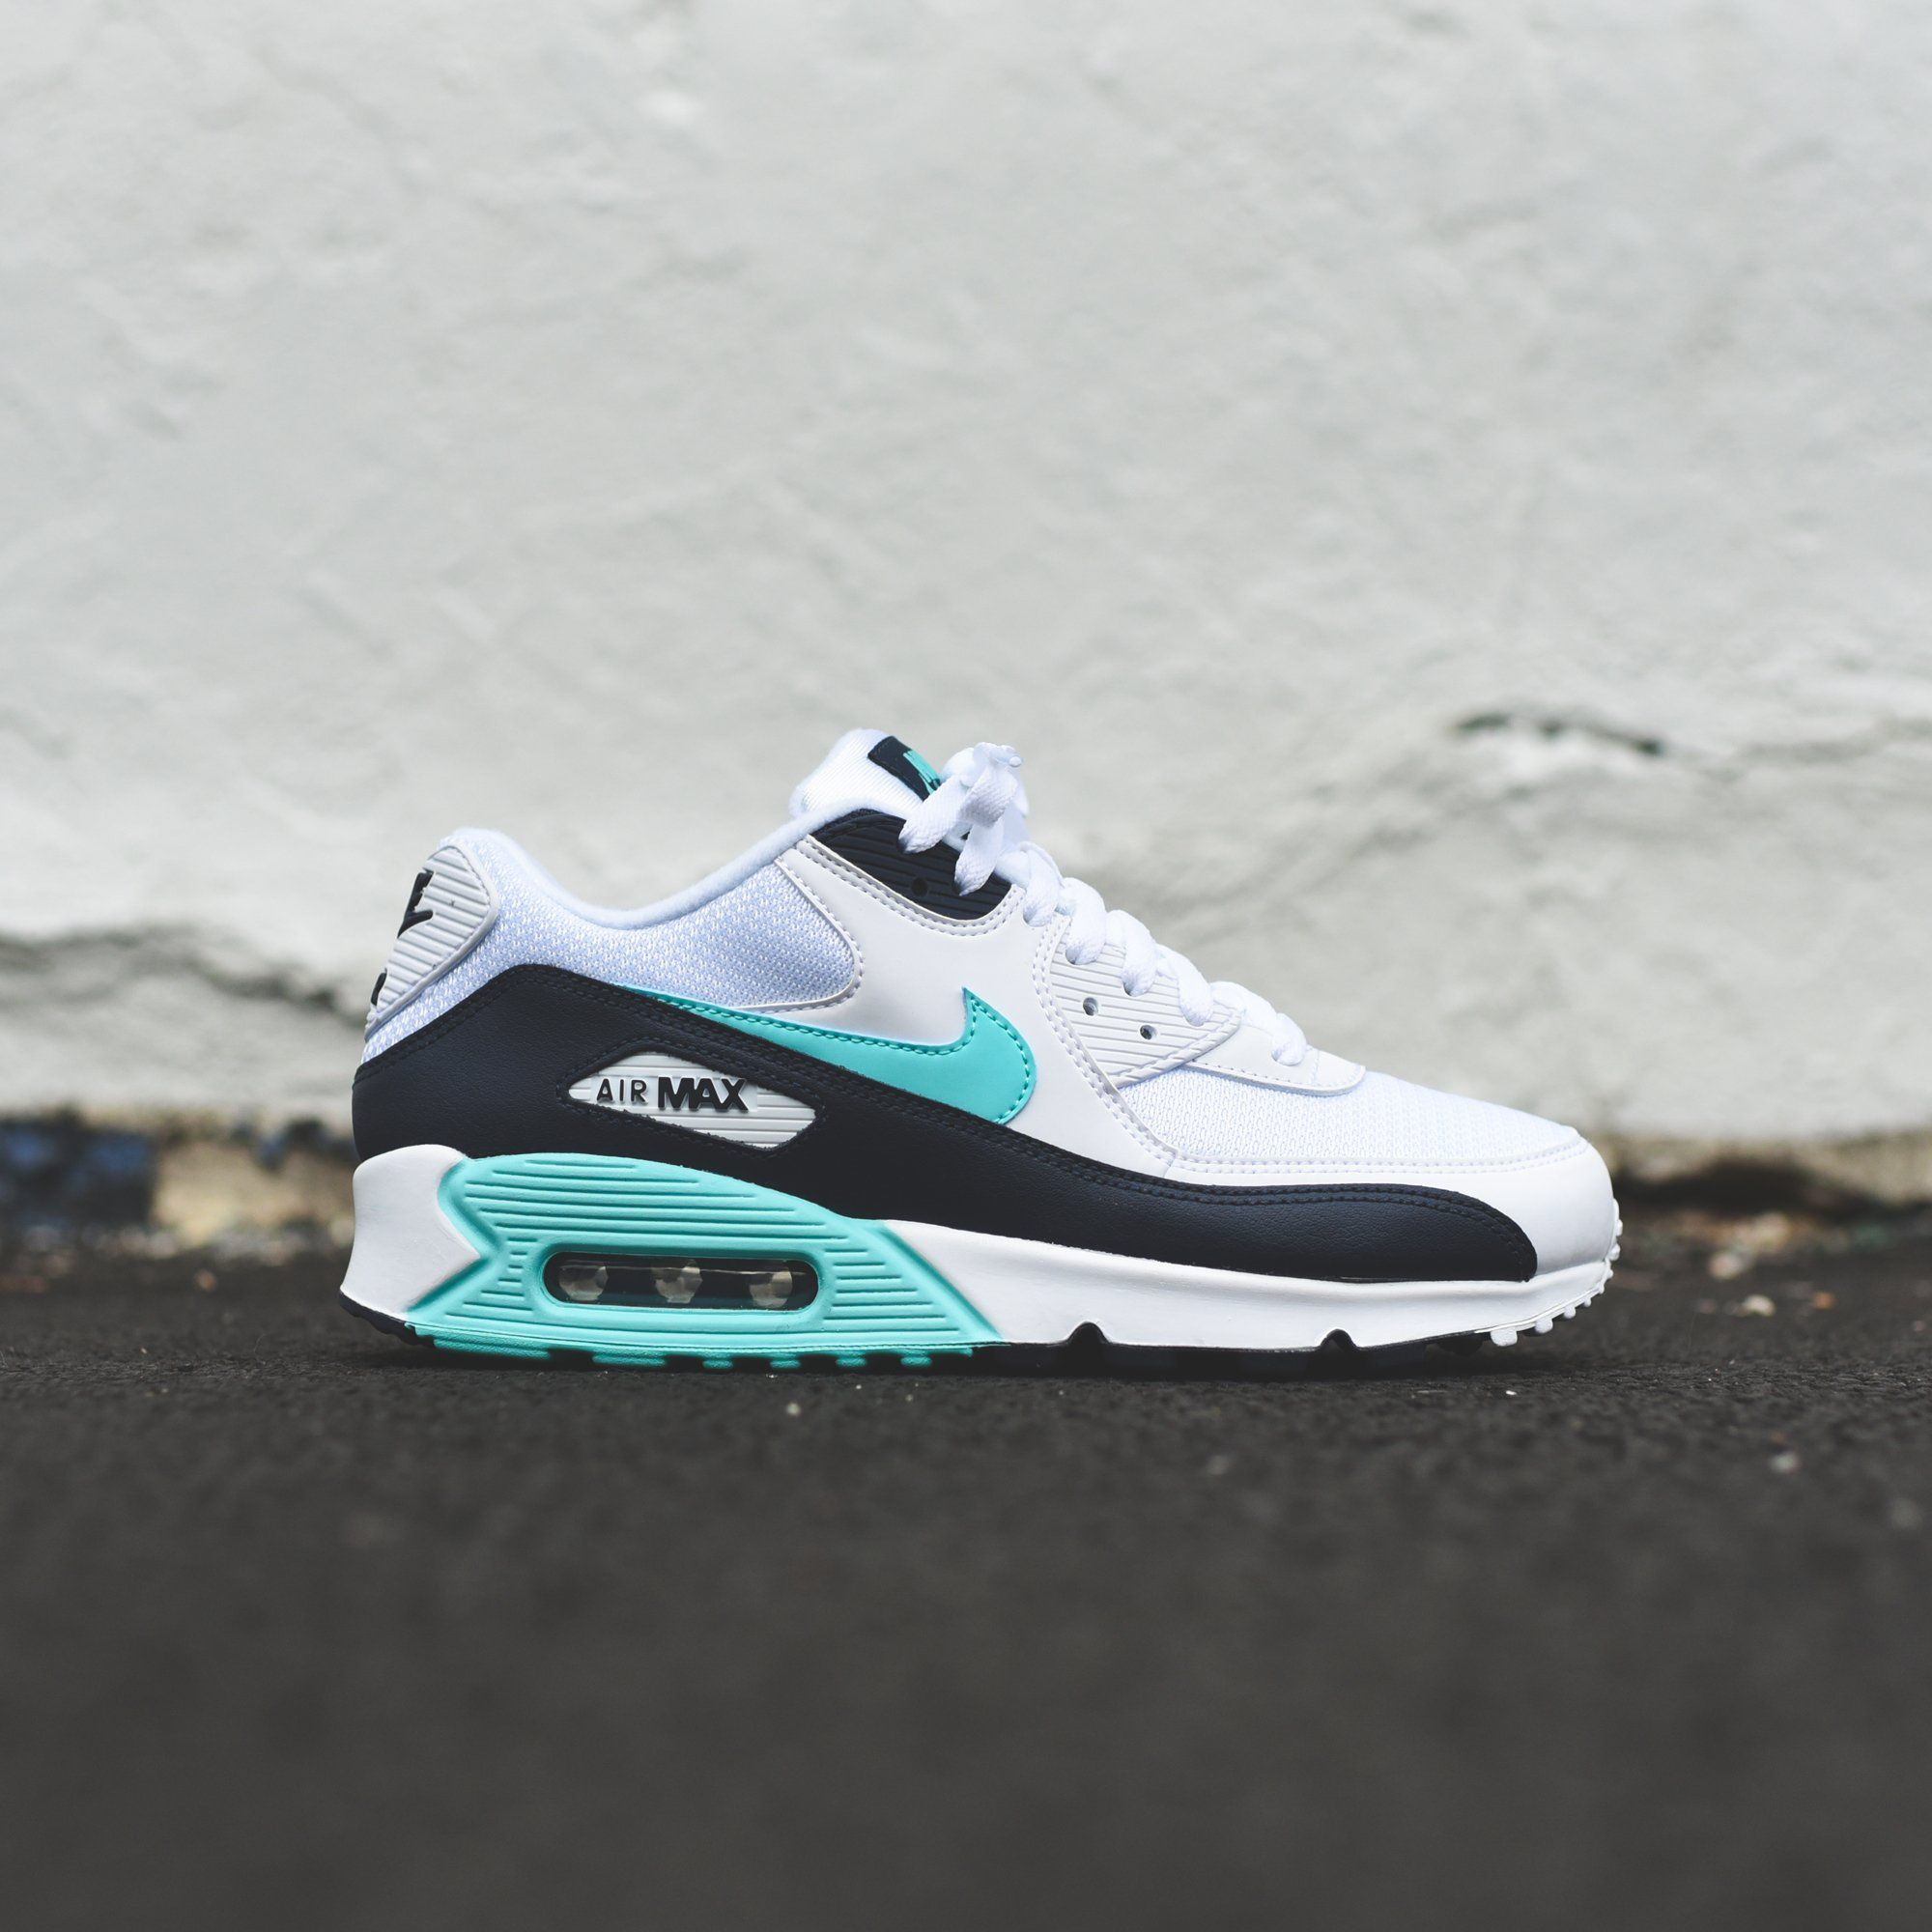 Nike Air Max 90 Essential White Aurora Green – Kith